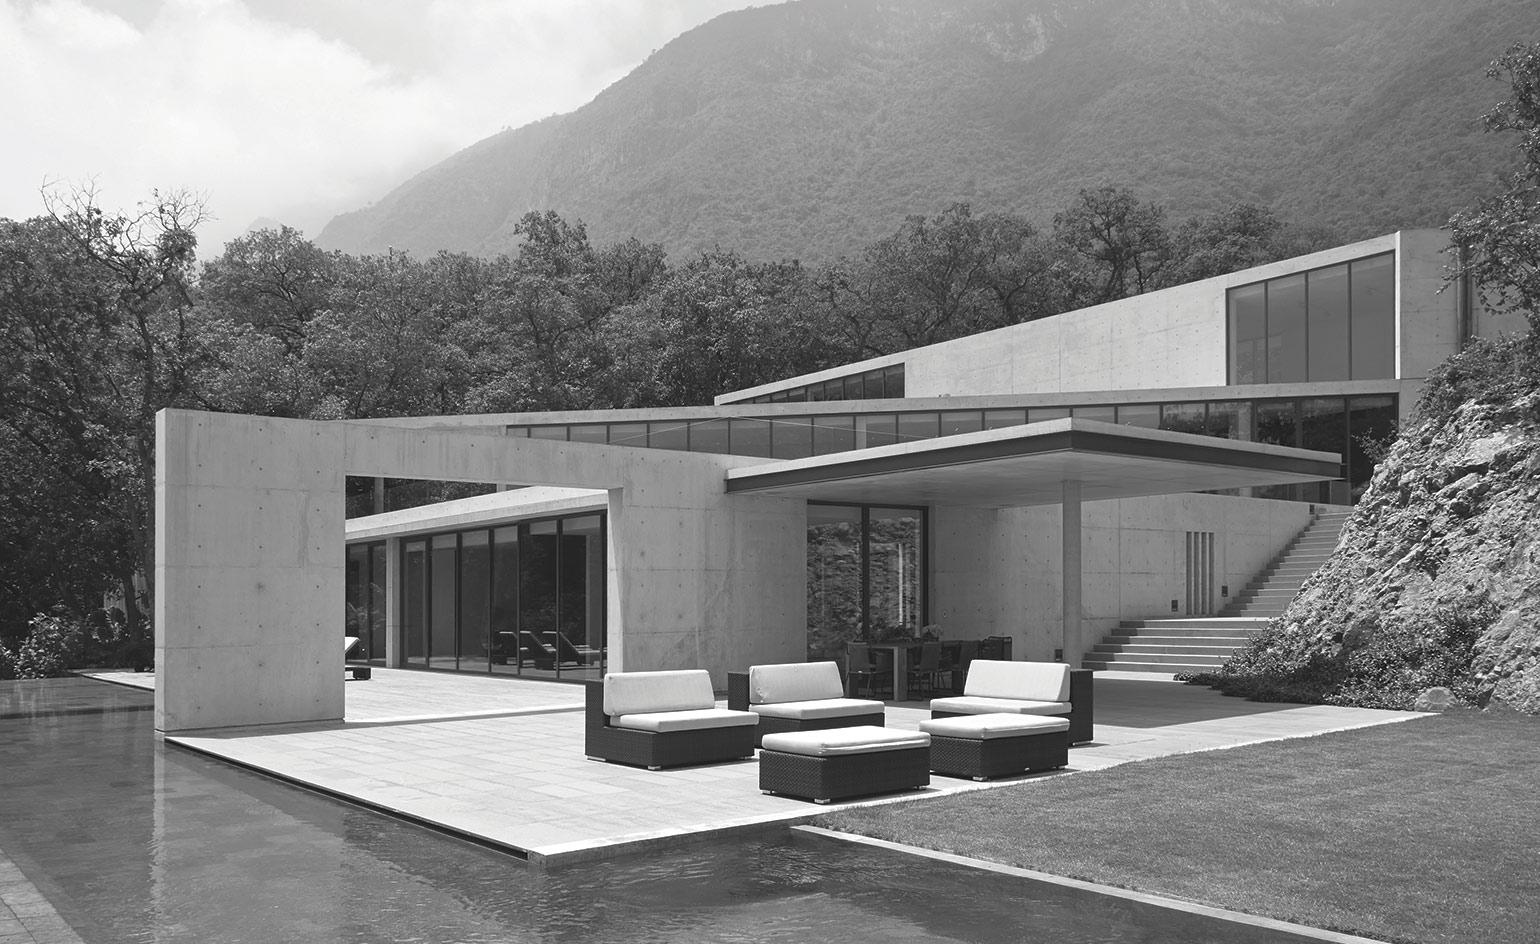 architecture modernist modern houses monterrey architectural modernism ornament crime villa mexico icon cultural loos adolf movement tadao ando 1920s credit